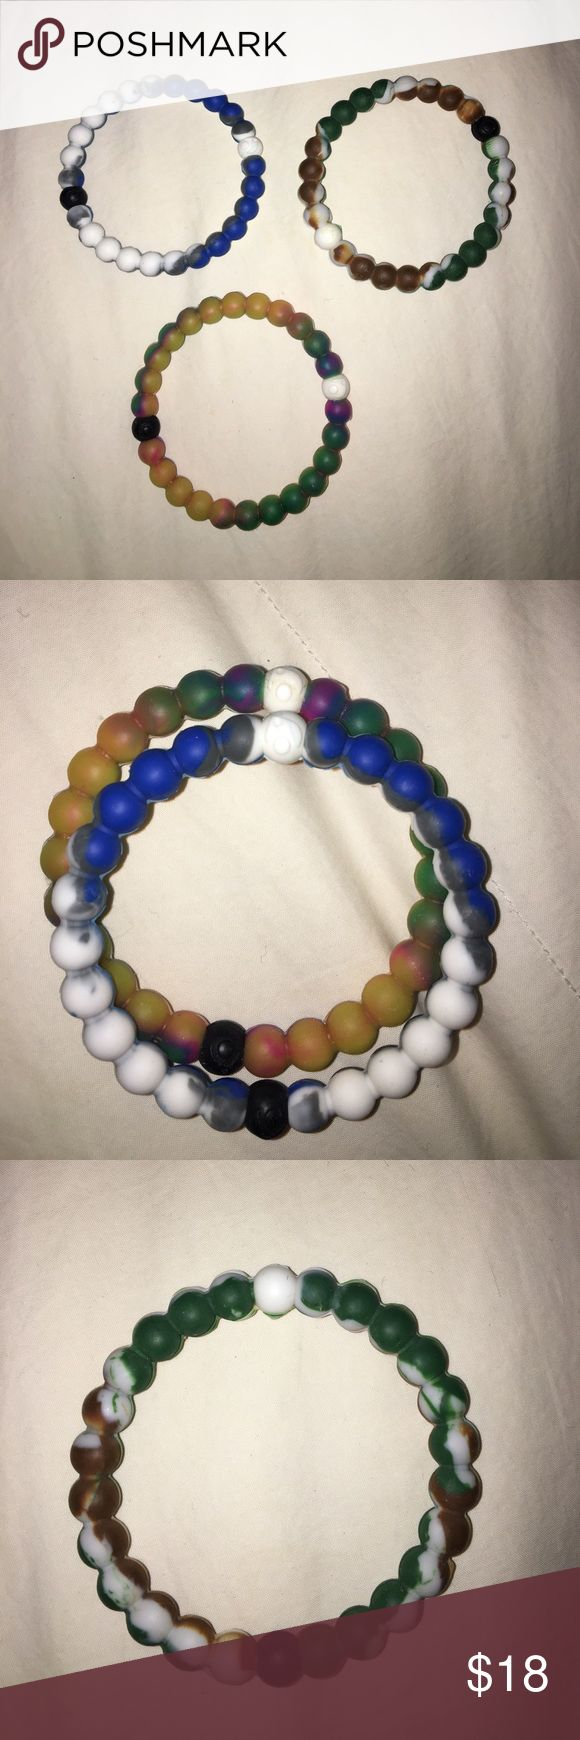 Lokai bracelets Selling the 2 bracelets listed together for $8 each because they are authentic. The army one is not which is why it is $5. The army one doesn't have the logo on it, but the other two do. Can buy all three for $13. Let me know if interest in an individual one, and I can make a separate posting. :) All three size M. Lokai Jewelry Bracelets